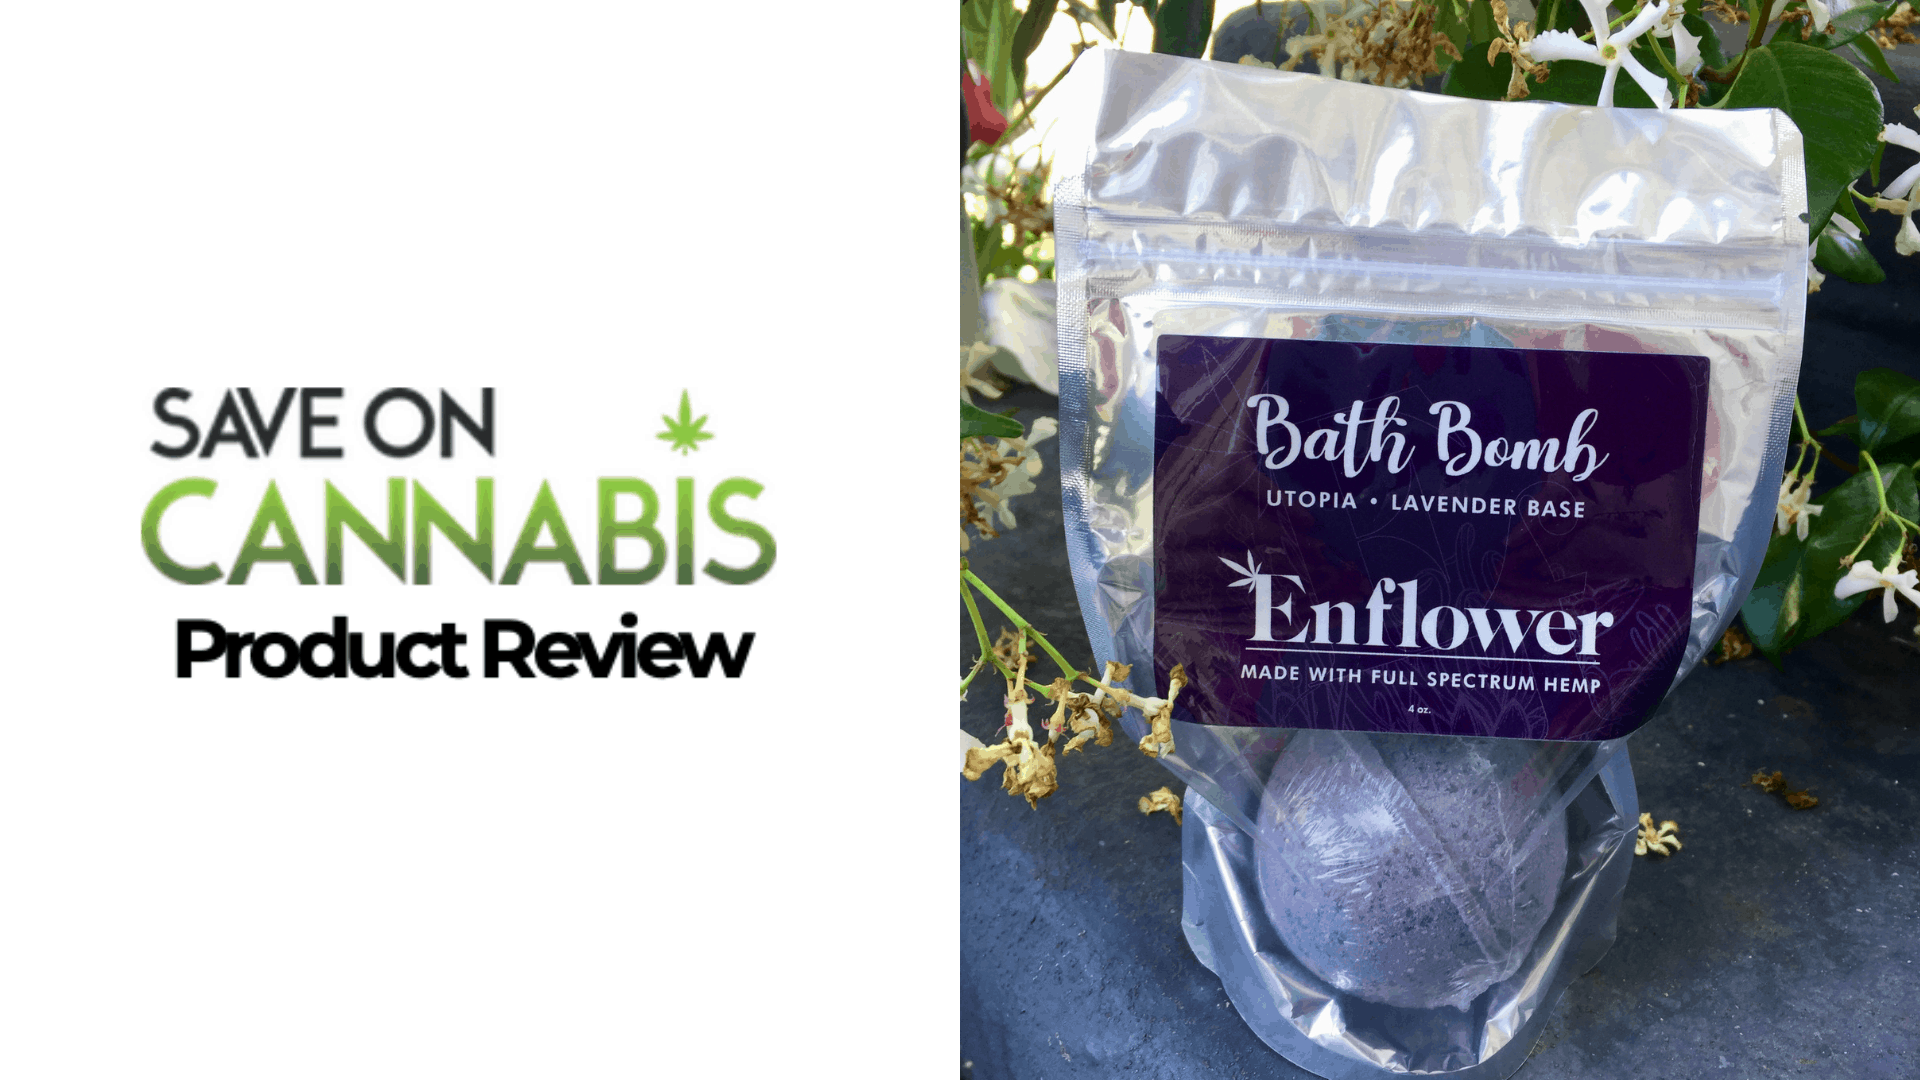 enflower cbd bath bomb utopia lavender save on cannabis Website